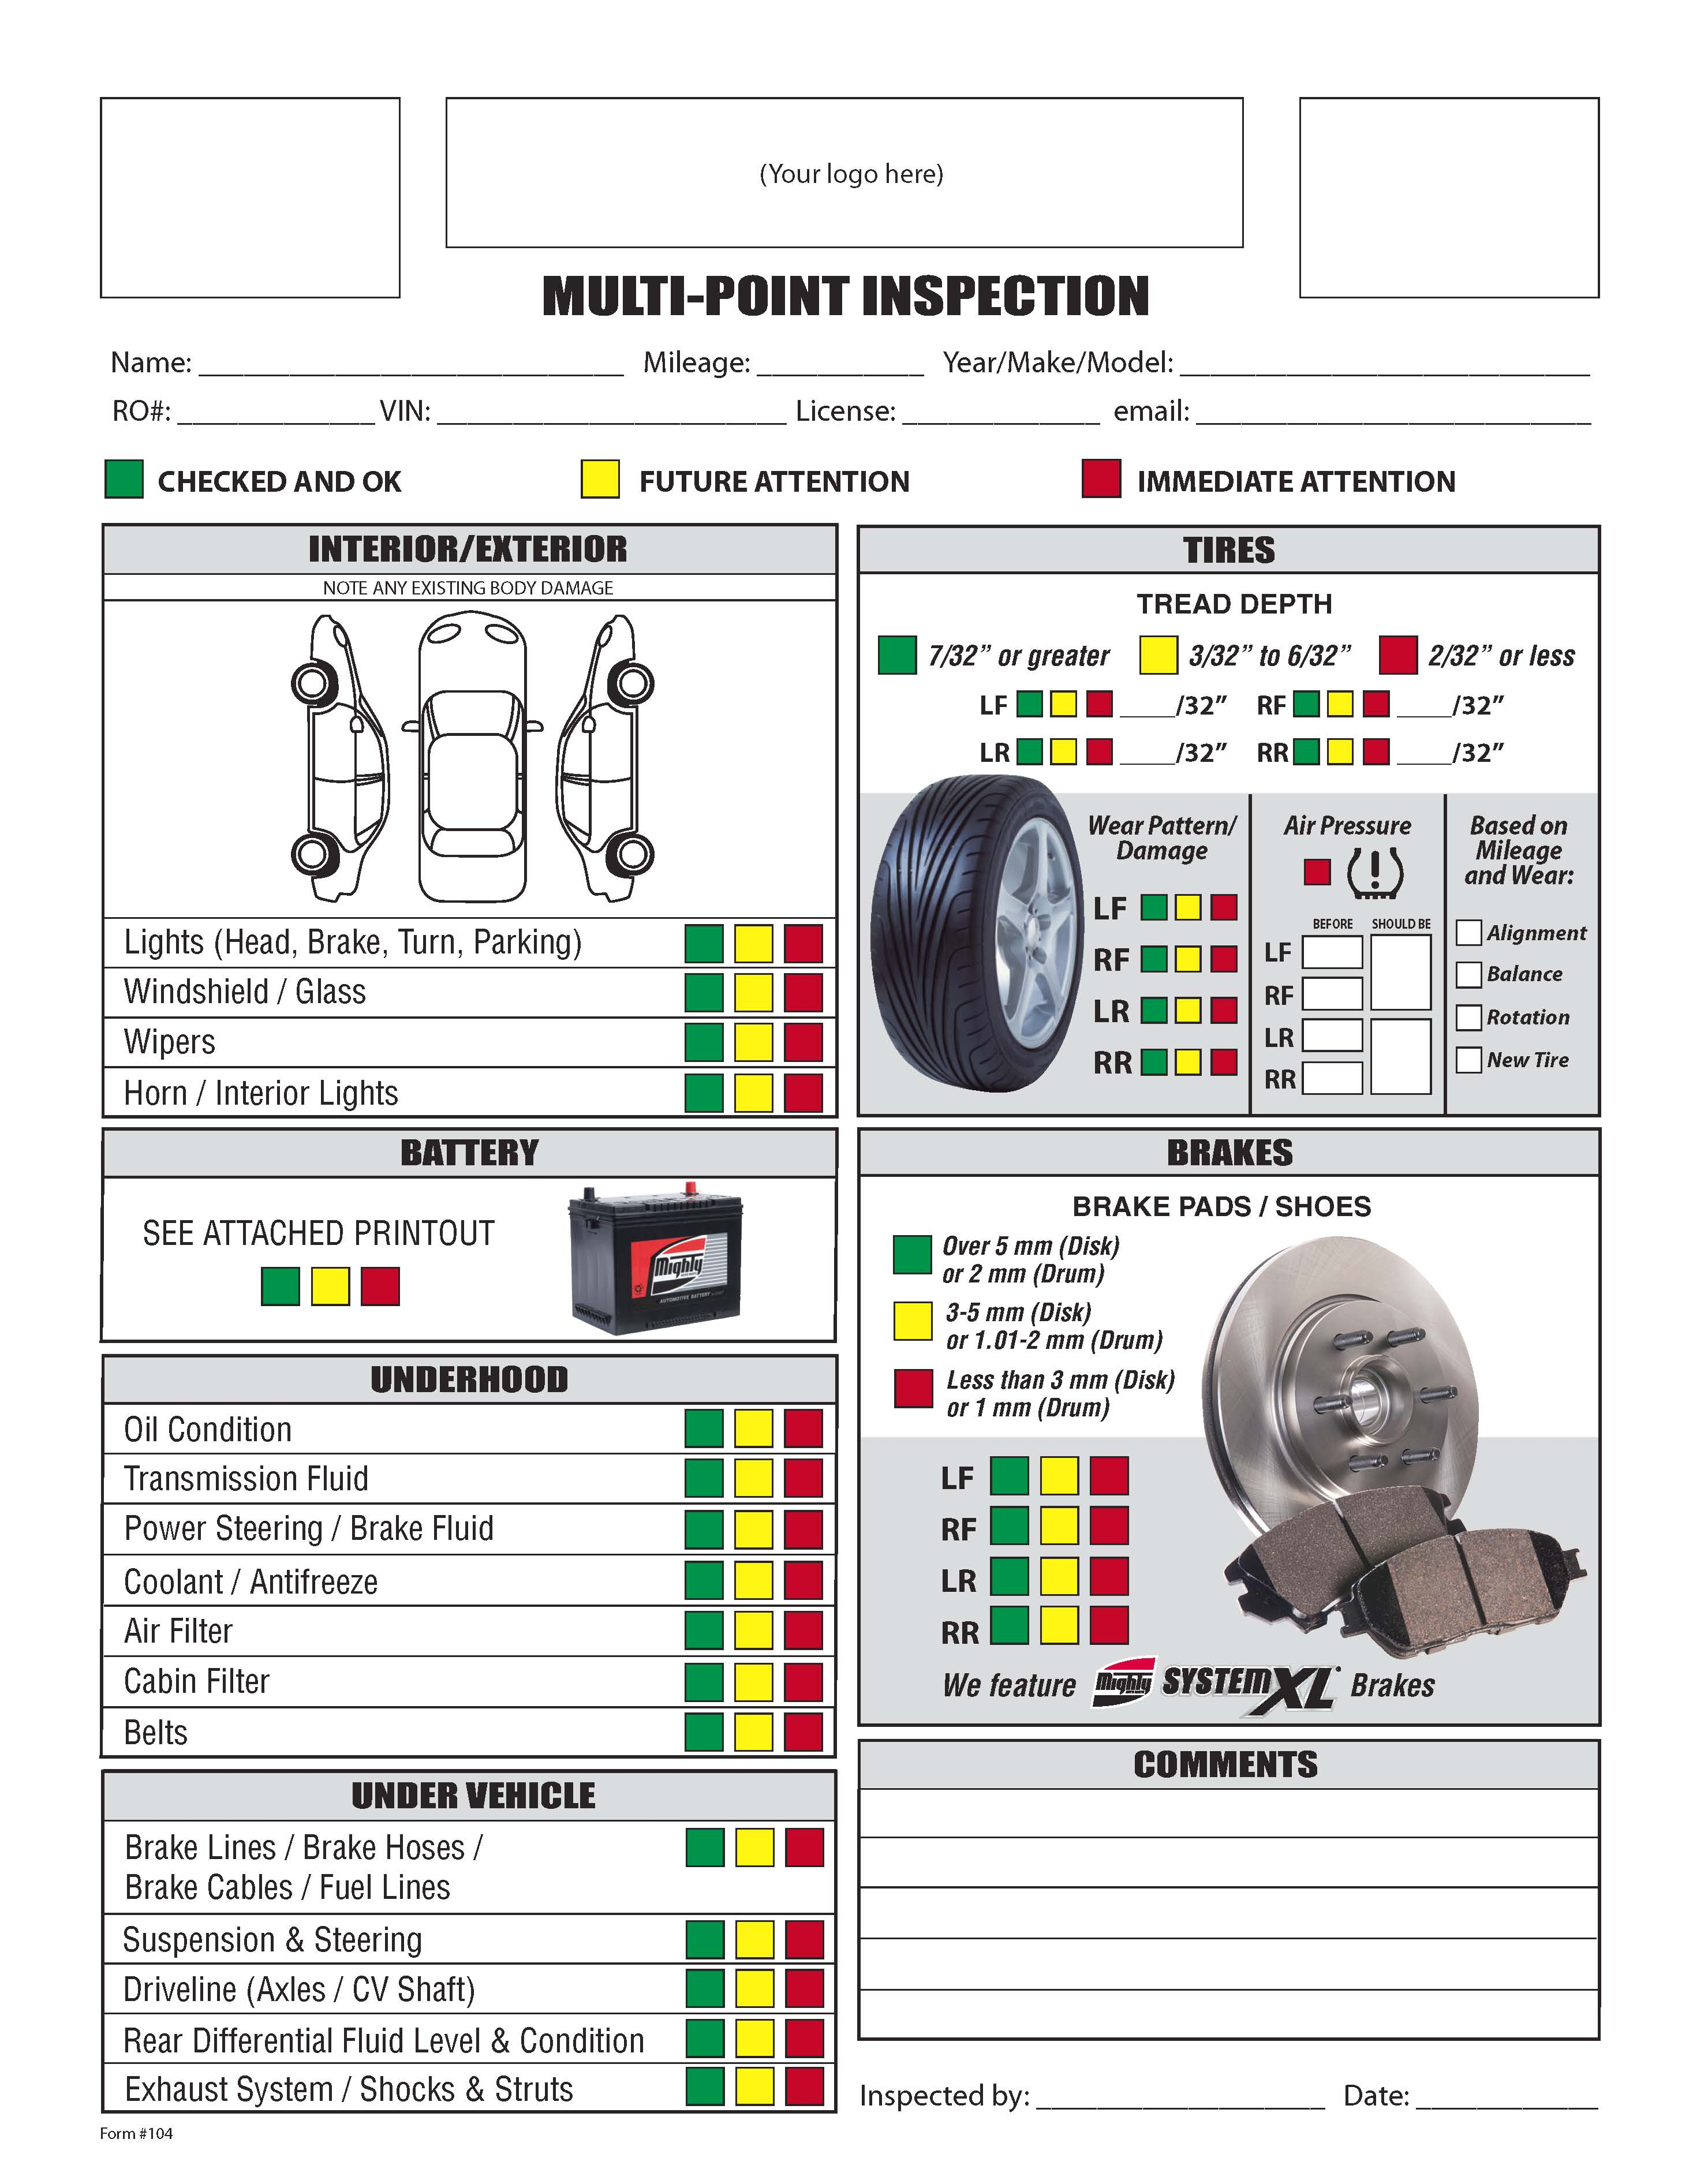 Vehicle Maintenance Checklist http://.lonewolf software.